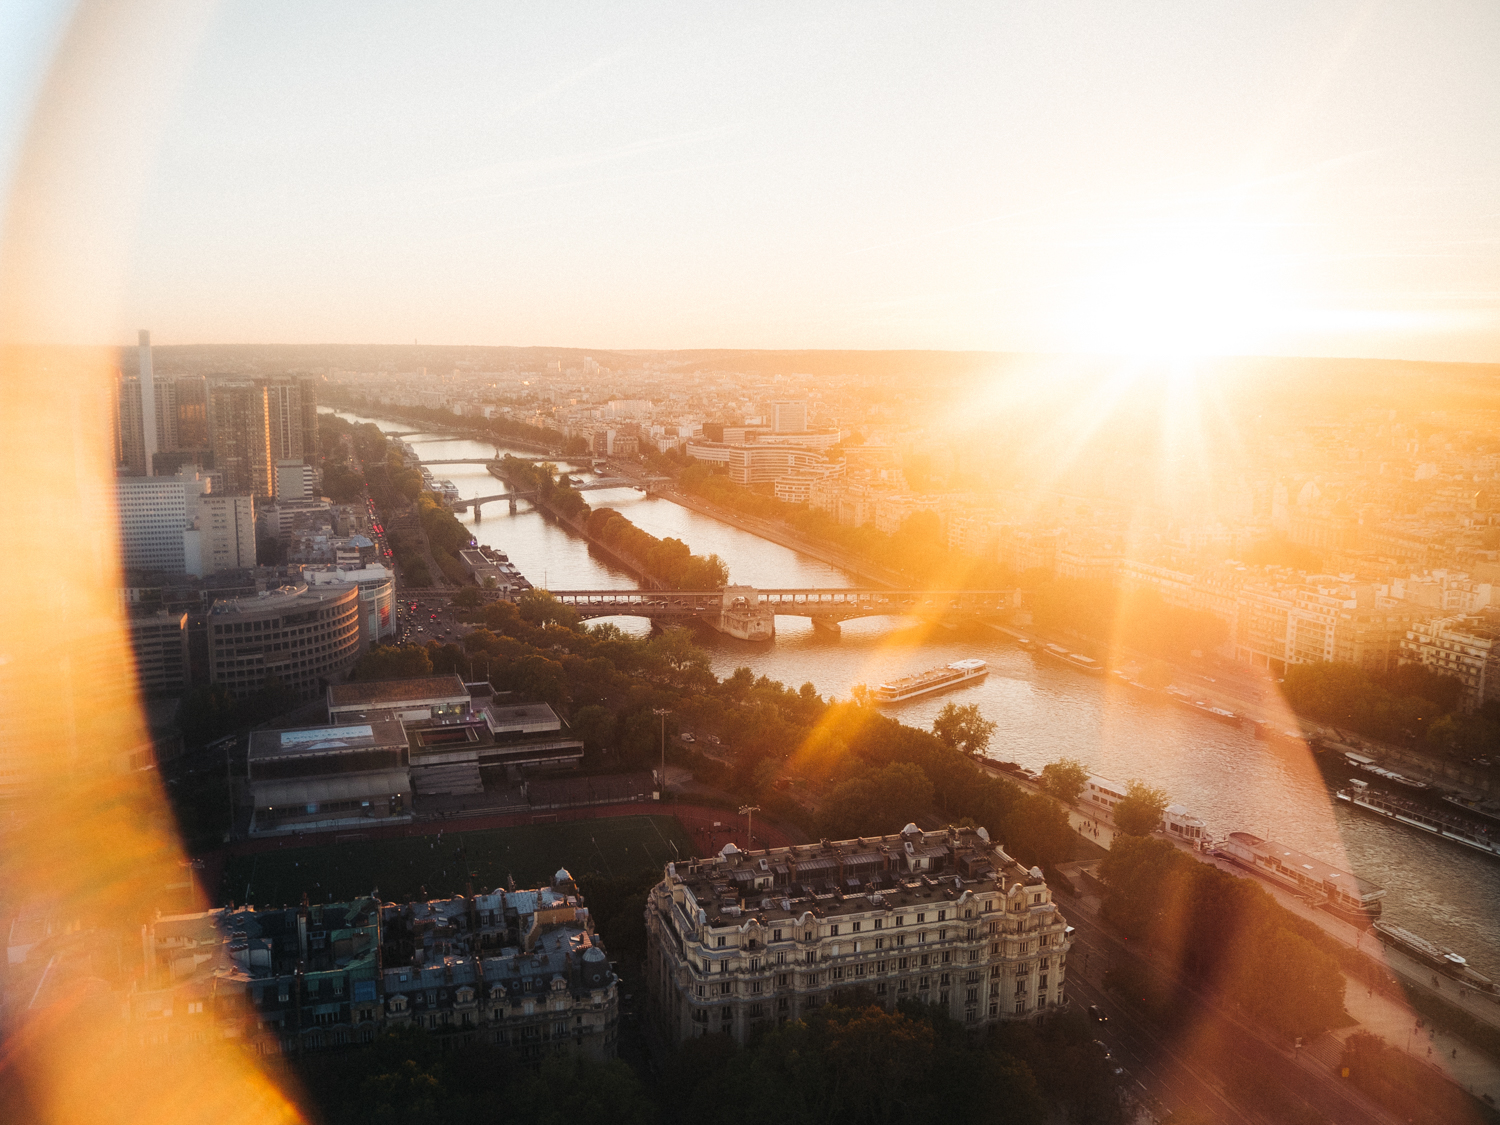 sunset shot of paris from the eiffel tower. creative travel photography travel blog paris france destination wedding photographer stop motion wedding films uk